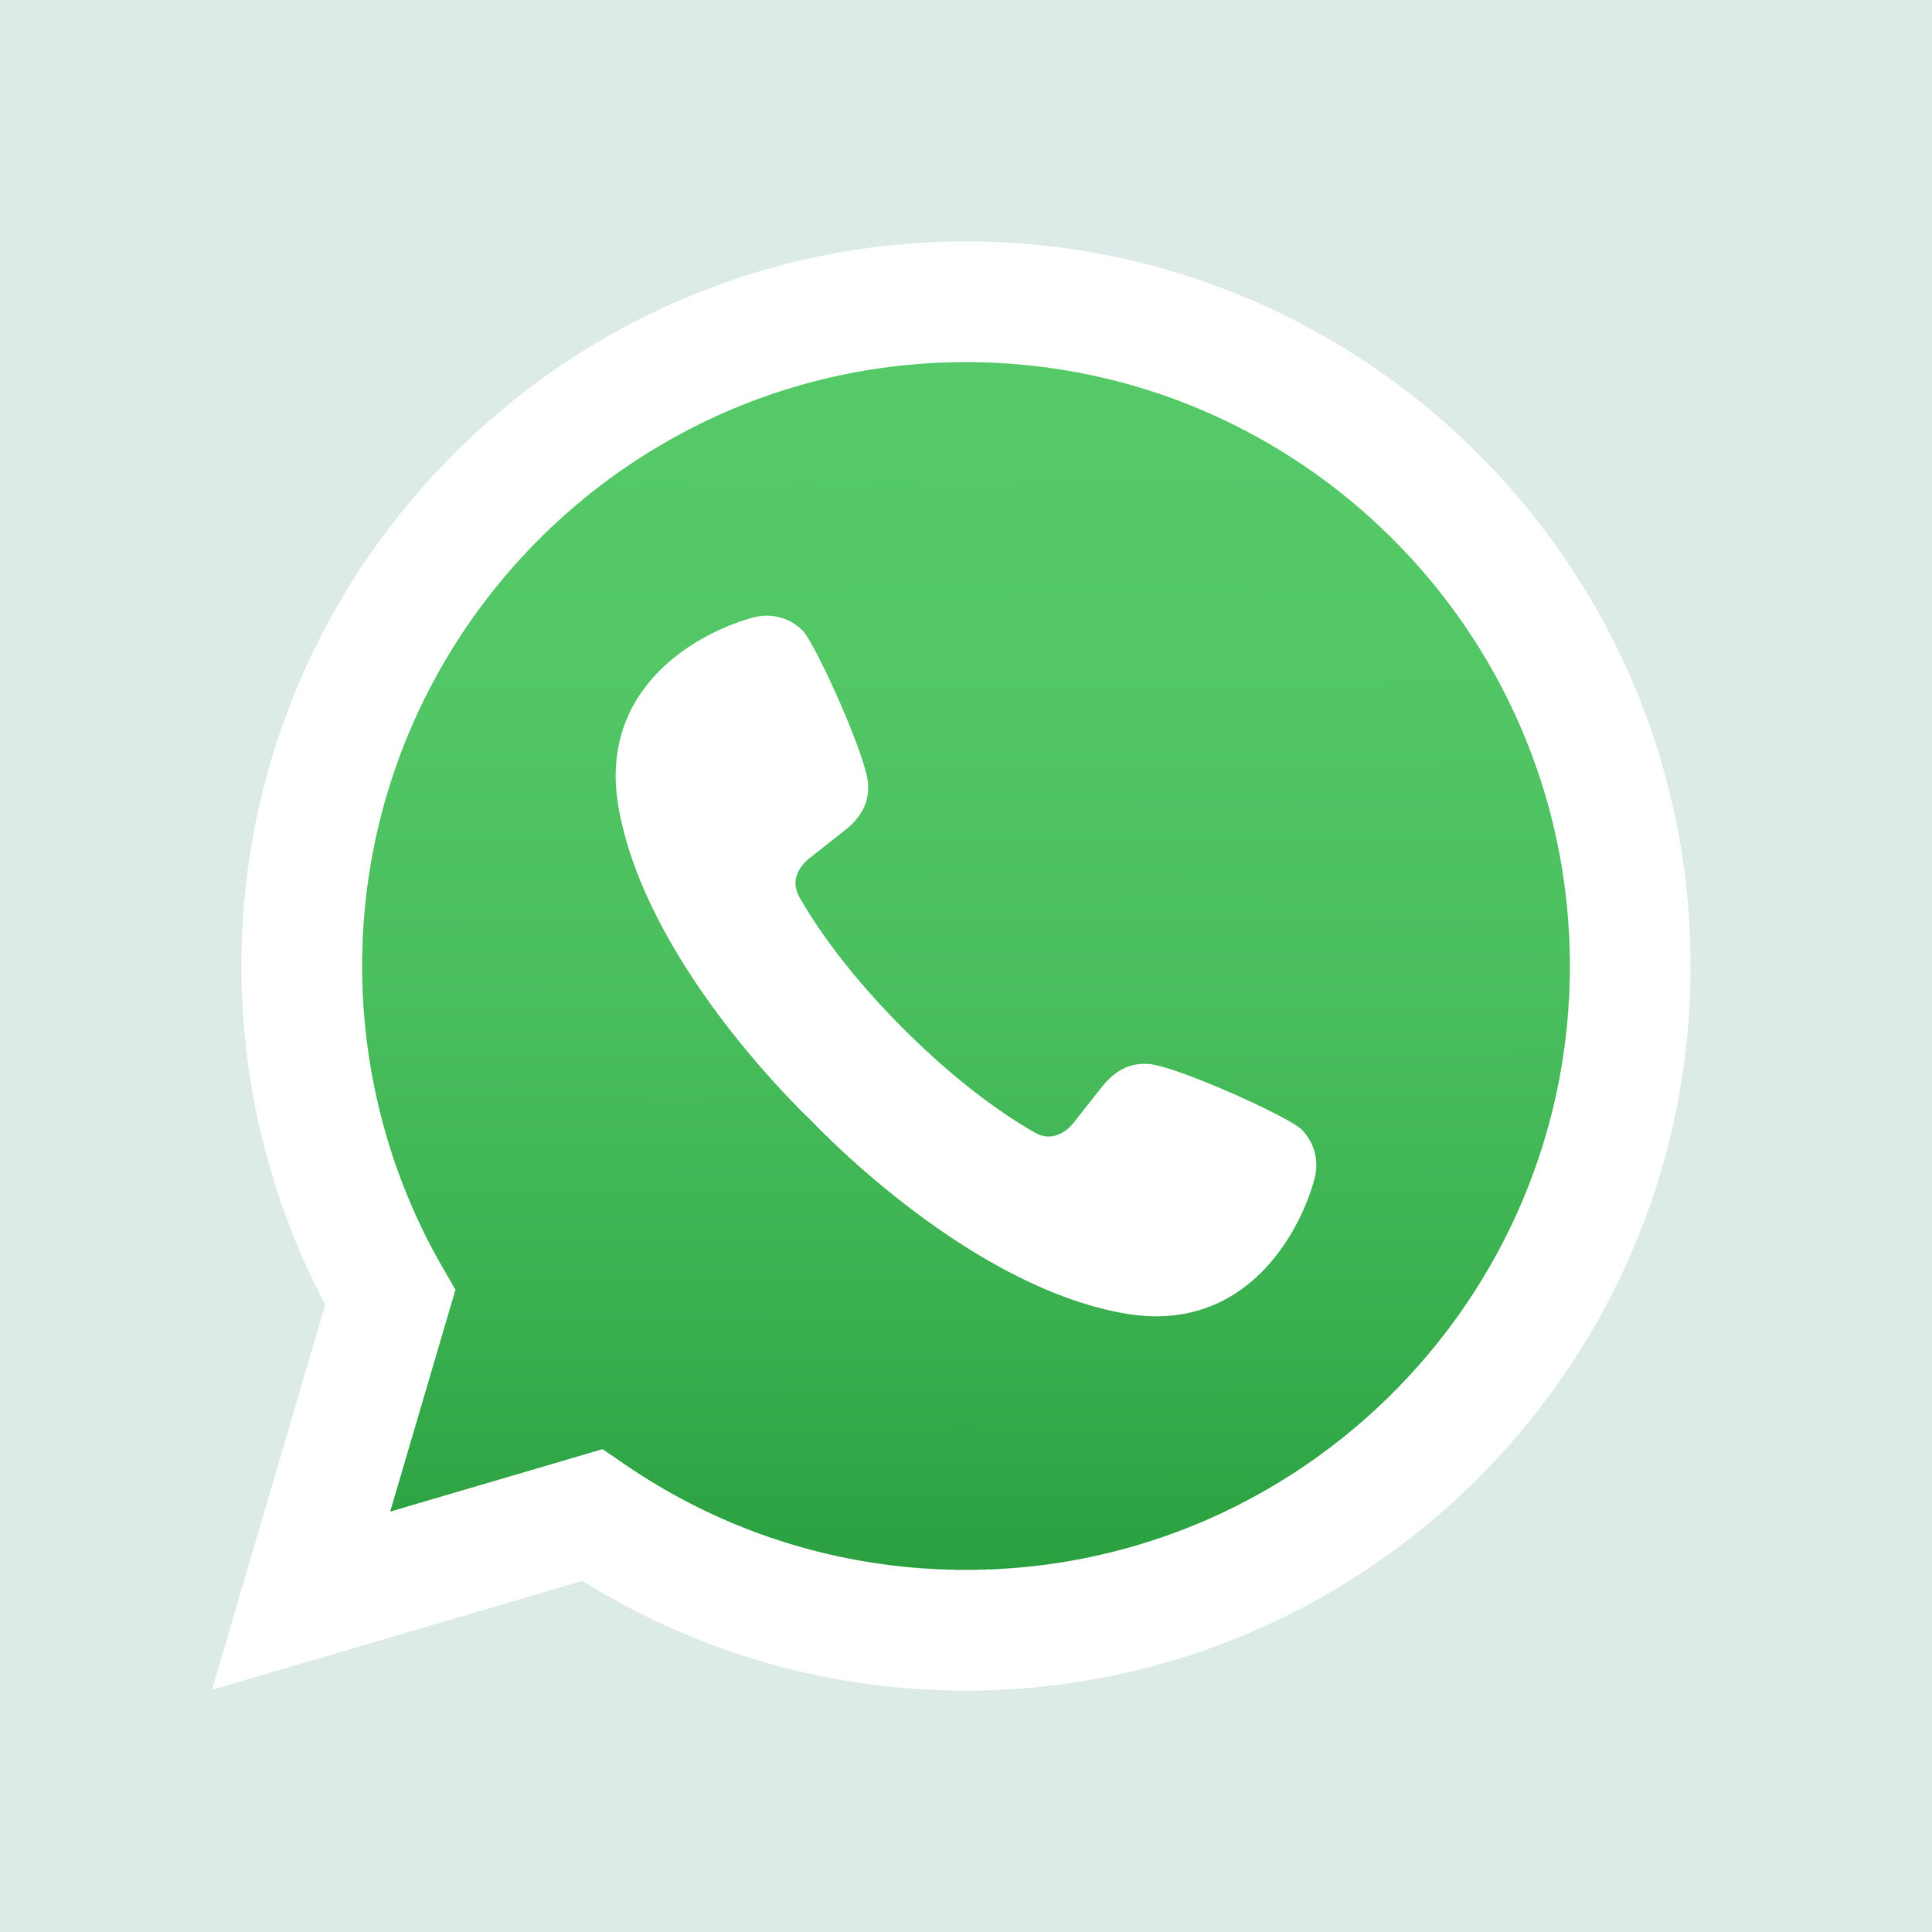 WhatsApp - You can reach us through WhatsApp chat too. Here you can place as well your booking request or ask any questions you might have. +41 76 281 00 00